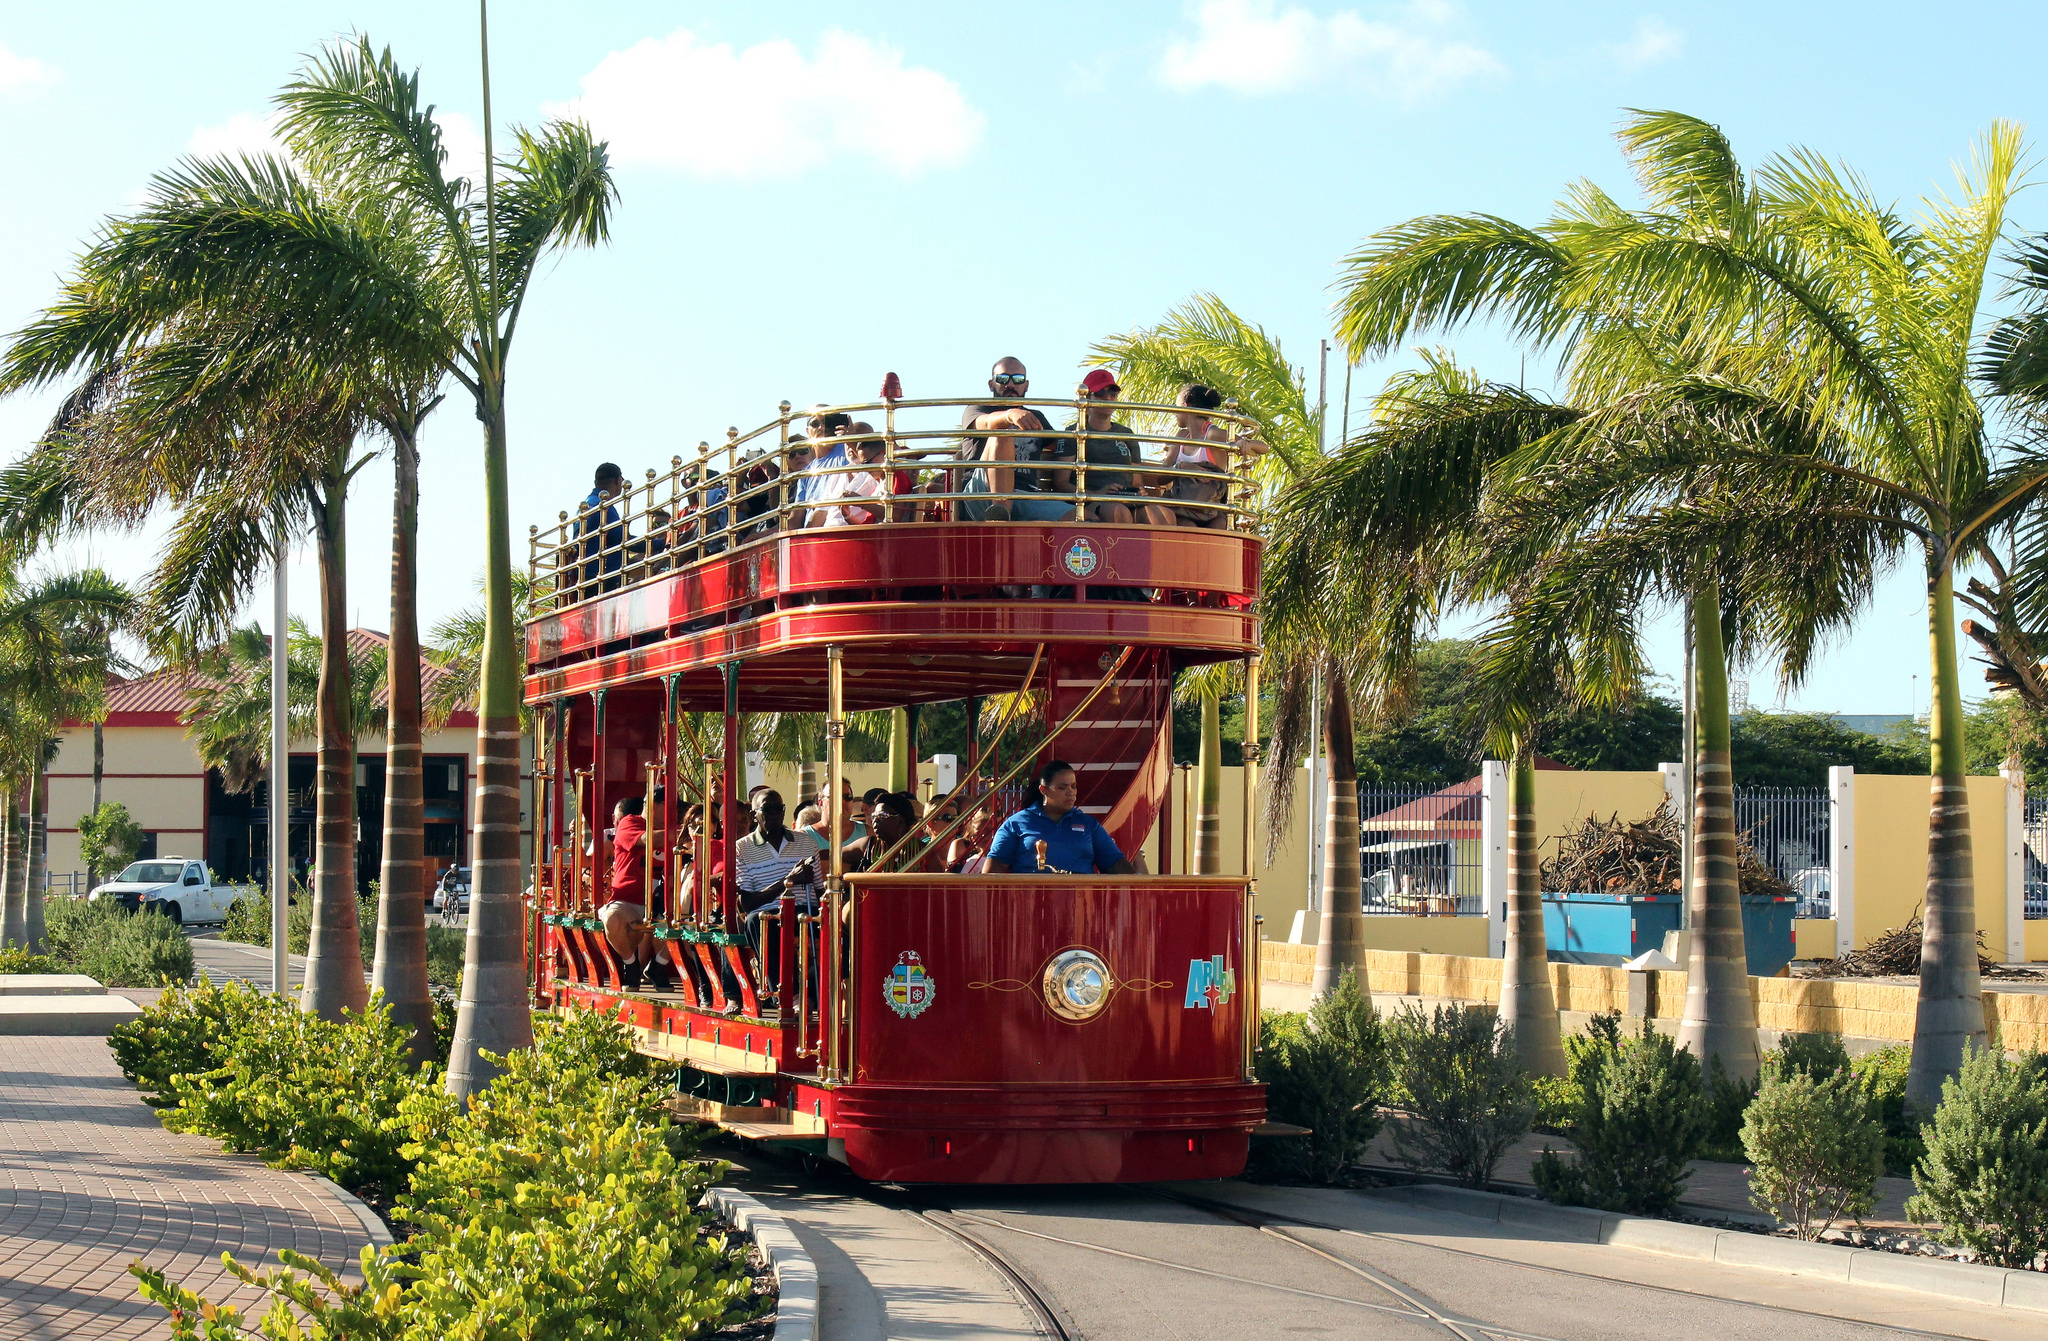 the free tourist trolley in Oranjestad